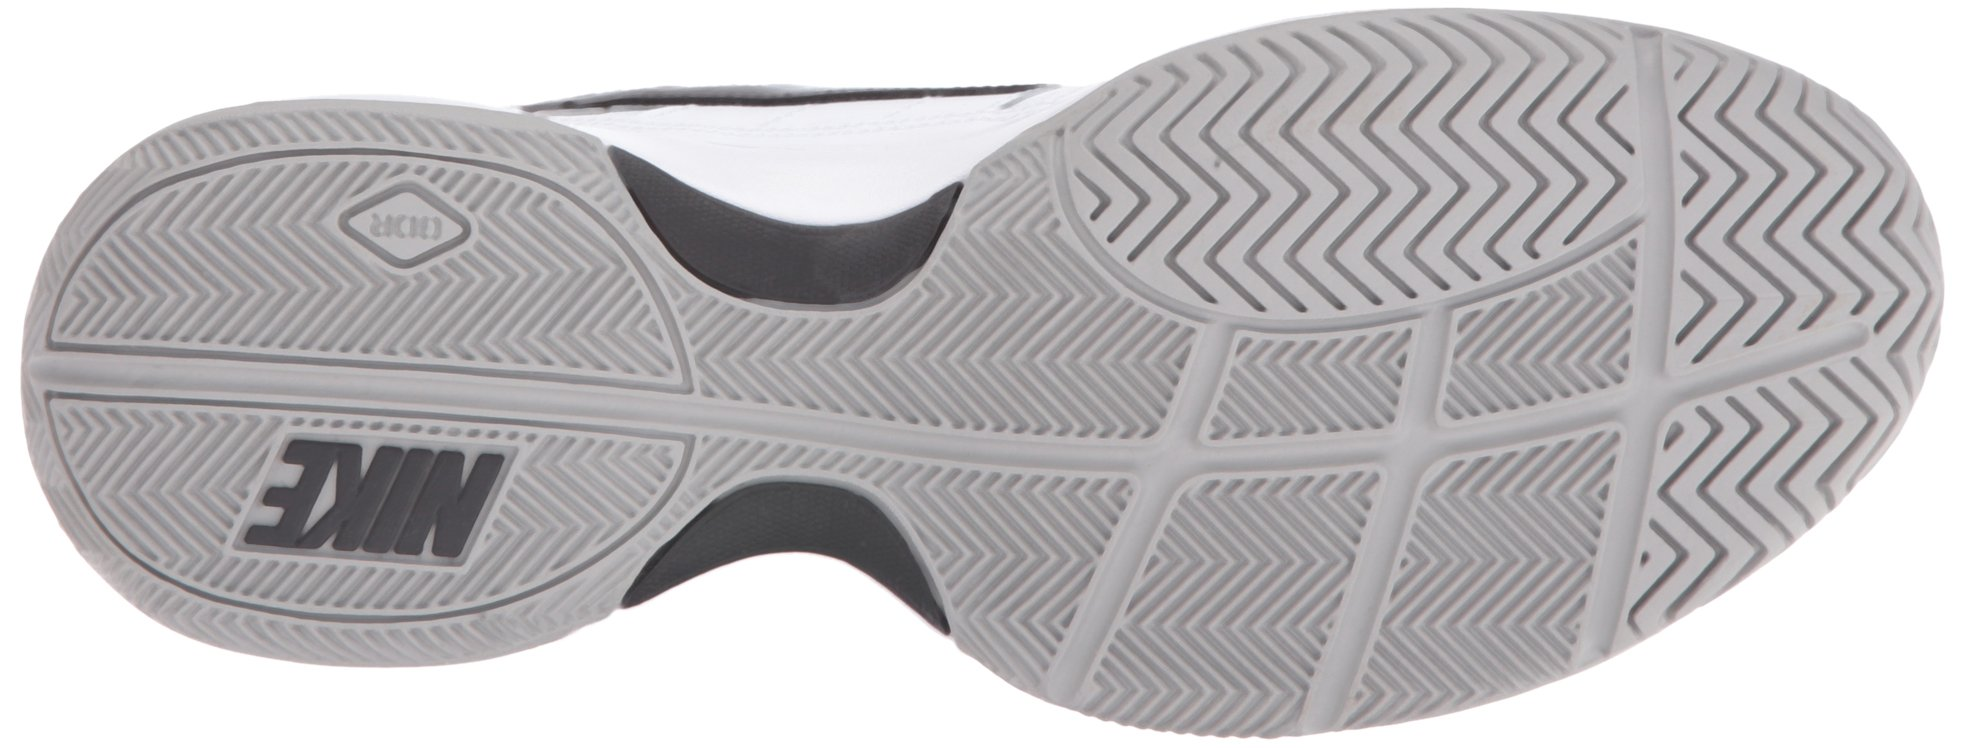 NIKE Men's Court Lite Tennis Shoe, White/Medium Grey/Black, 6.5 D(M) US by Nike (Image #3)